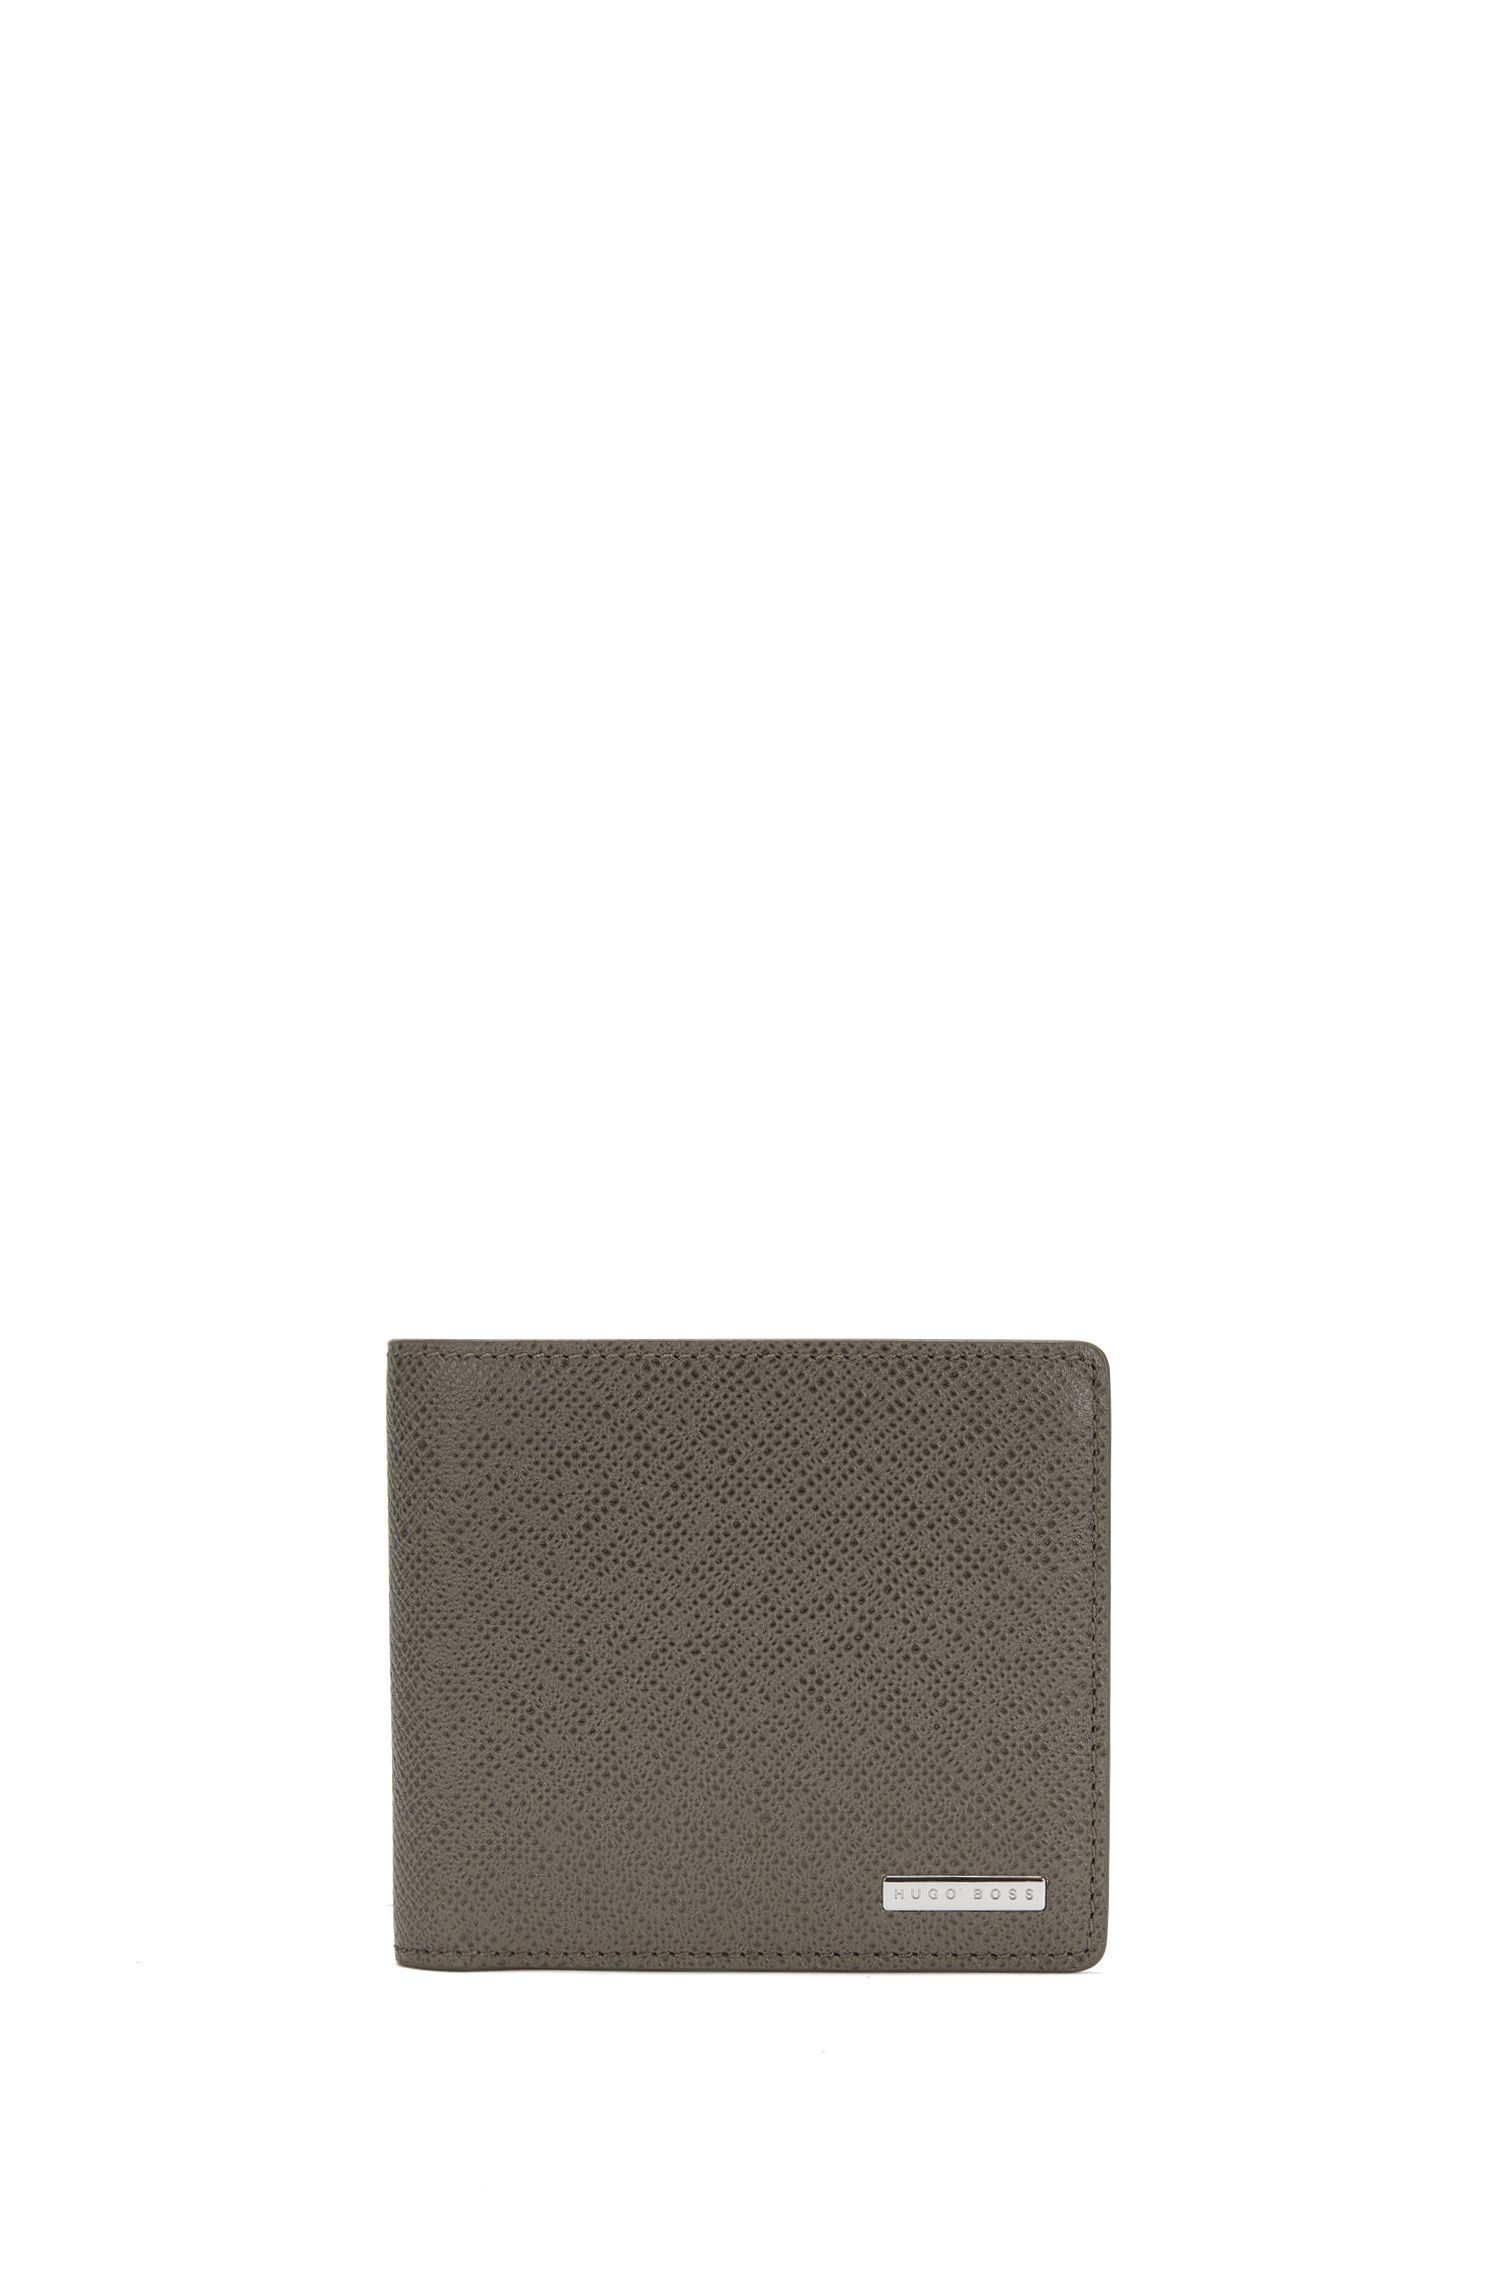 Calfskin Pebbled Wallet | Signature Coin